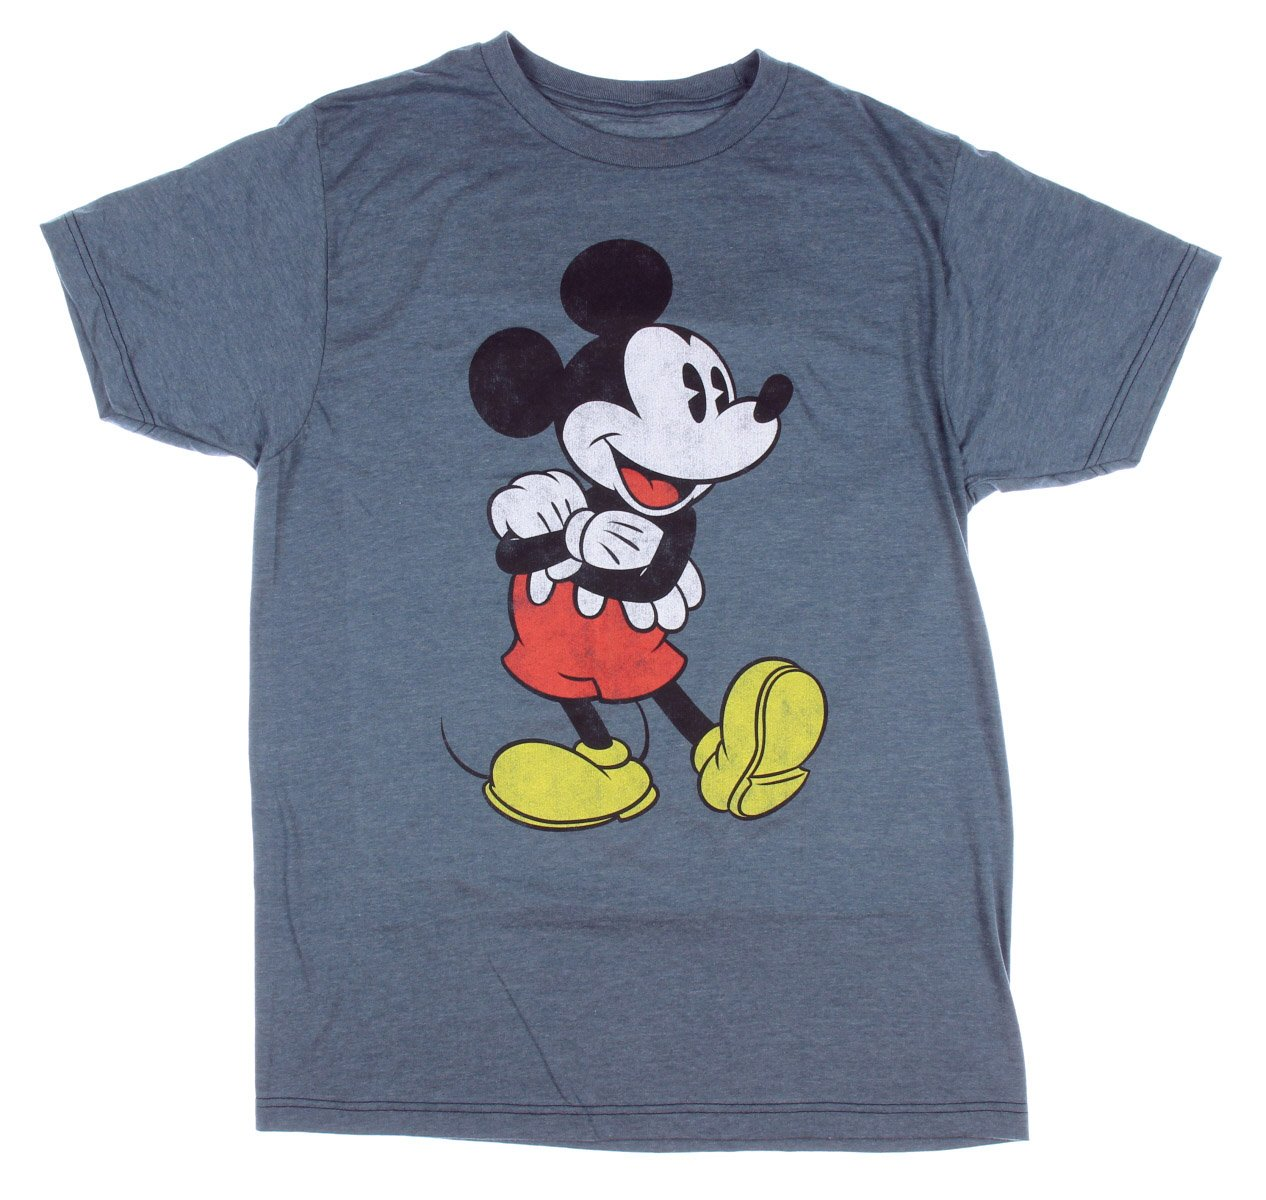 Mickey Mouse Arms Crossed T-shirt (XXL, Heather Navy)